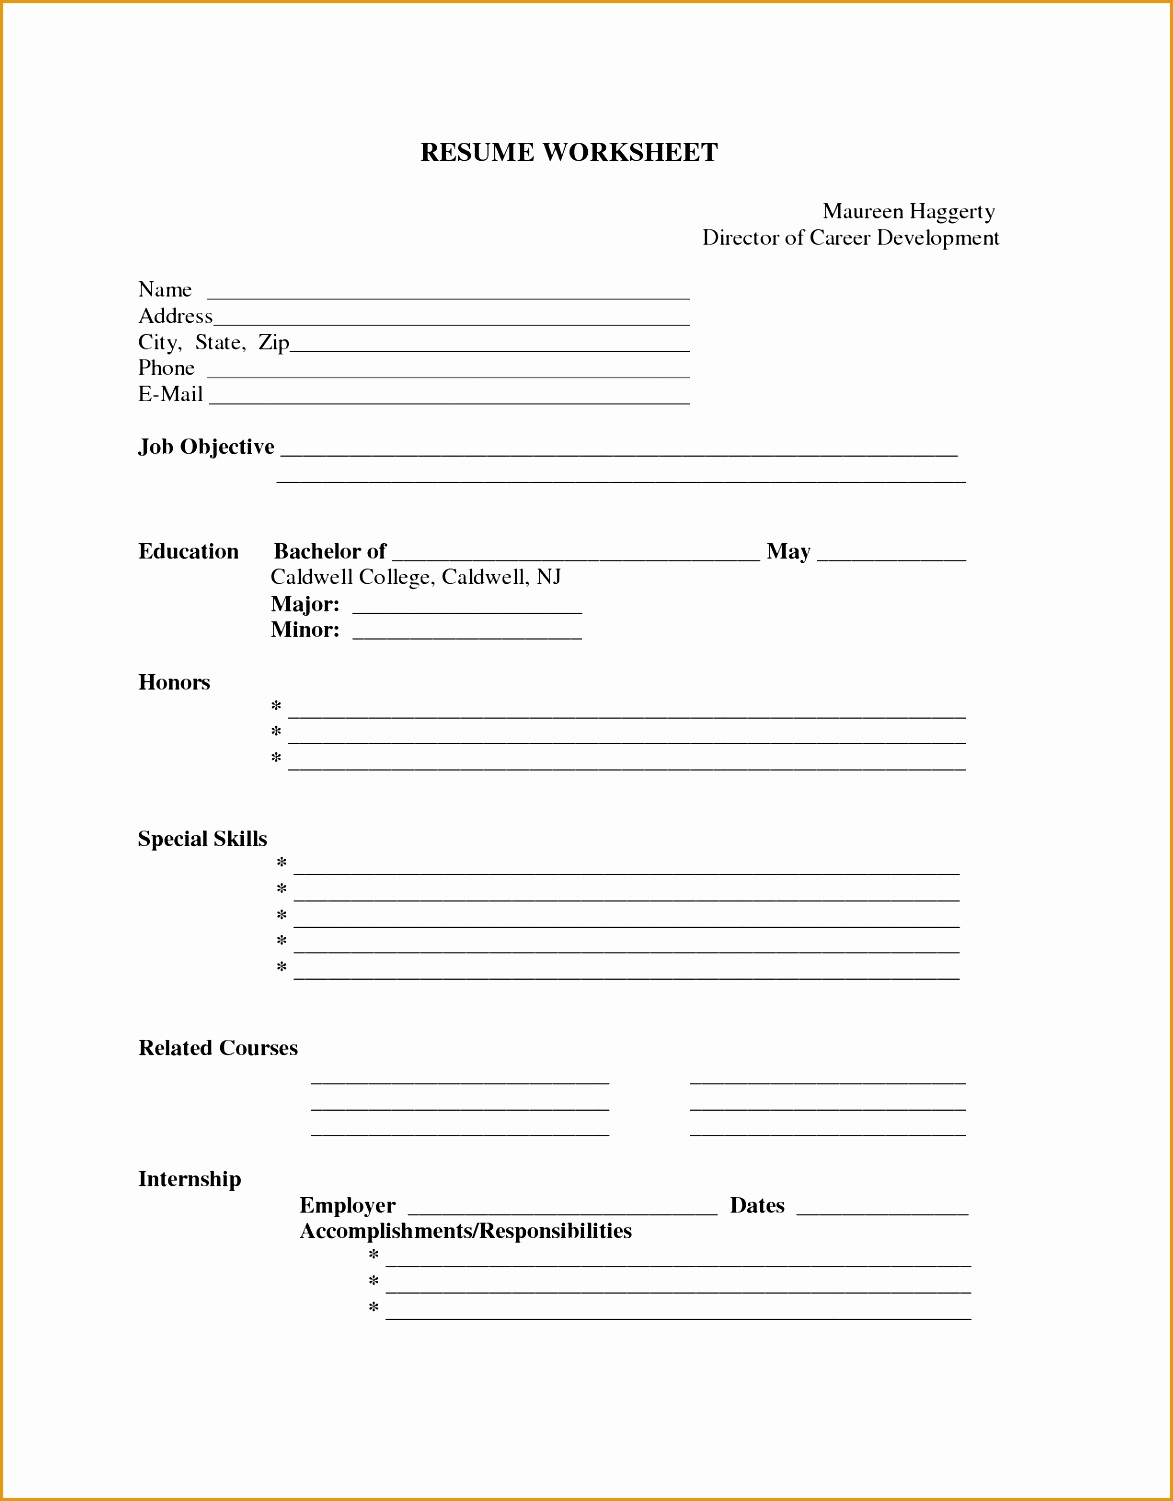 Resume Print Out free resume builder printable resume builder worksheet